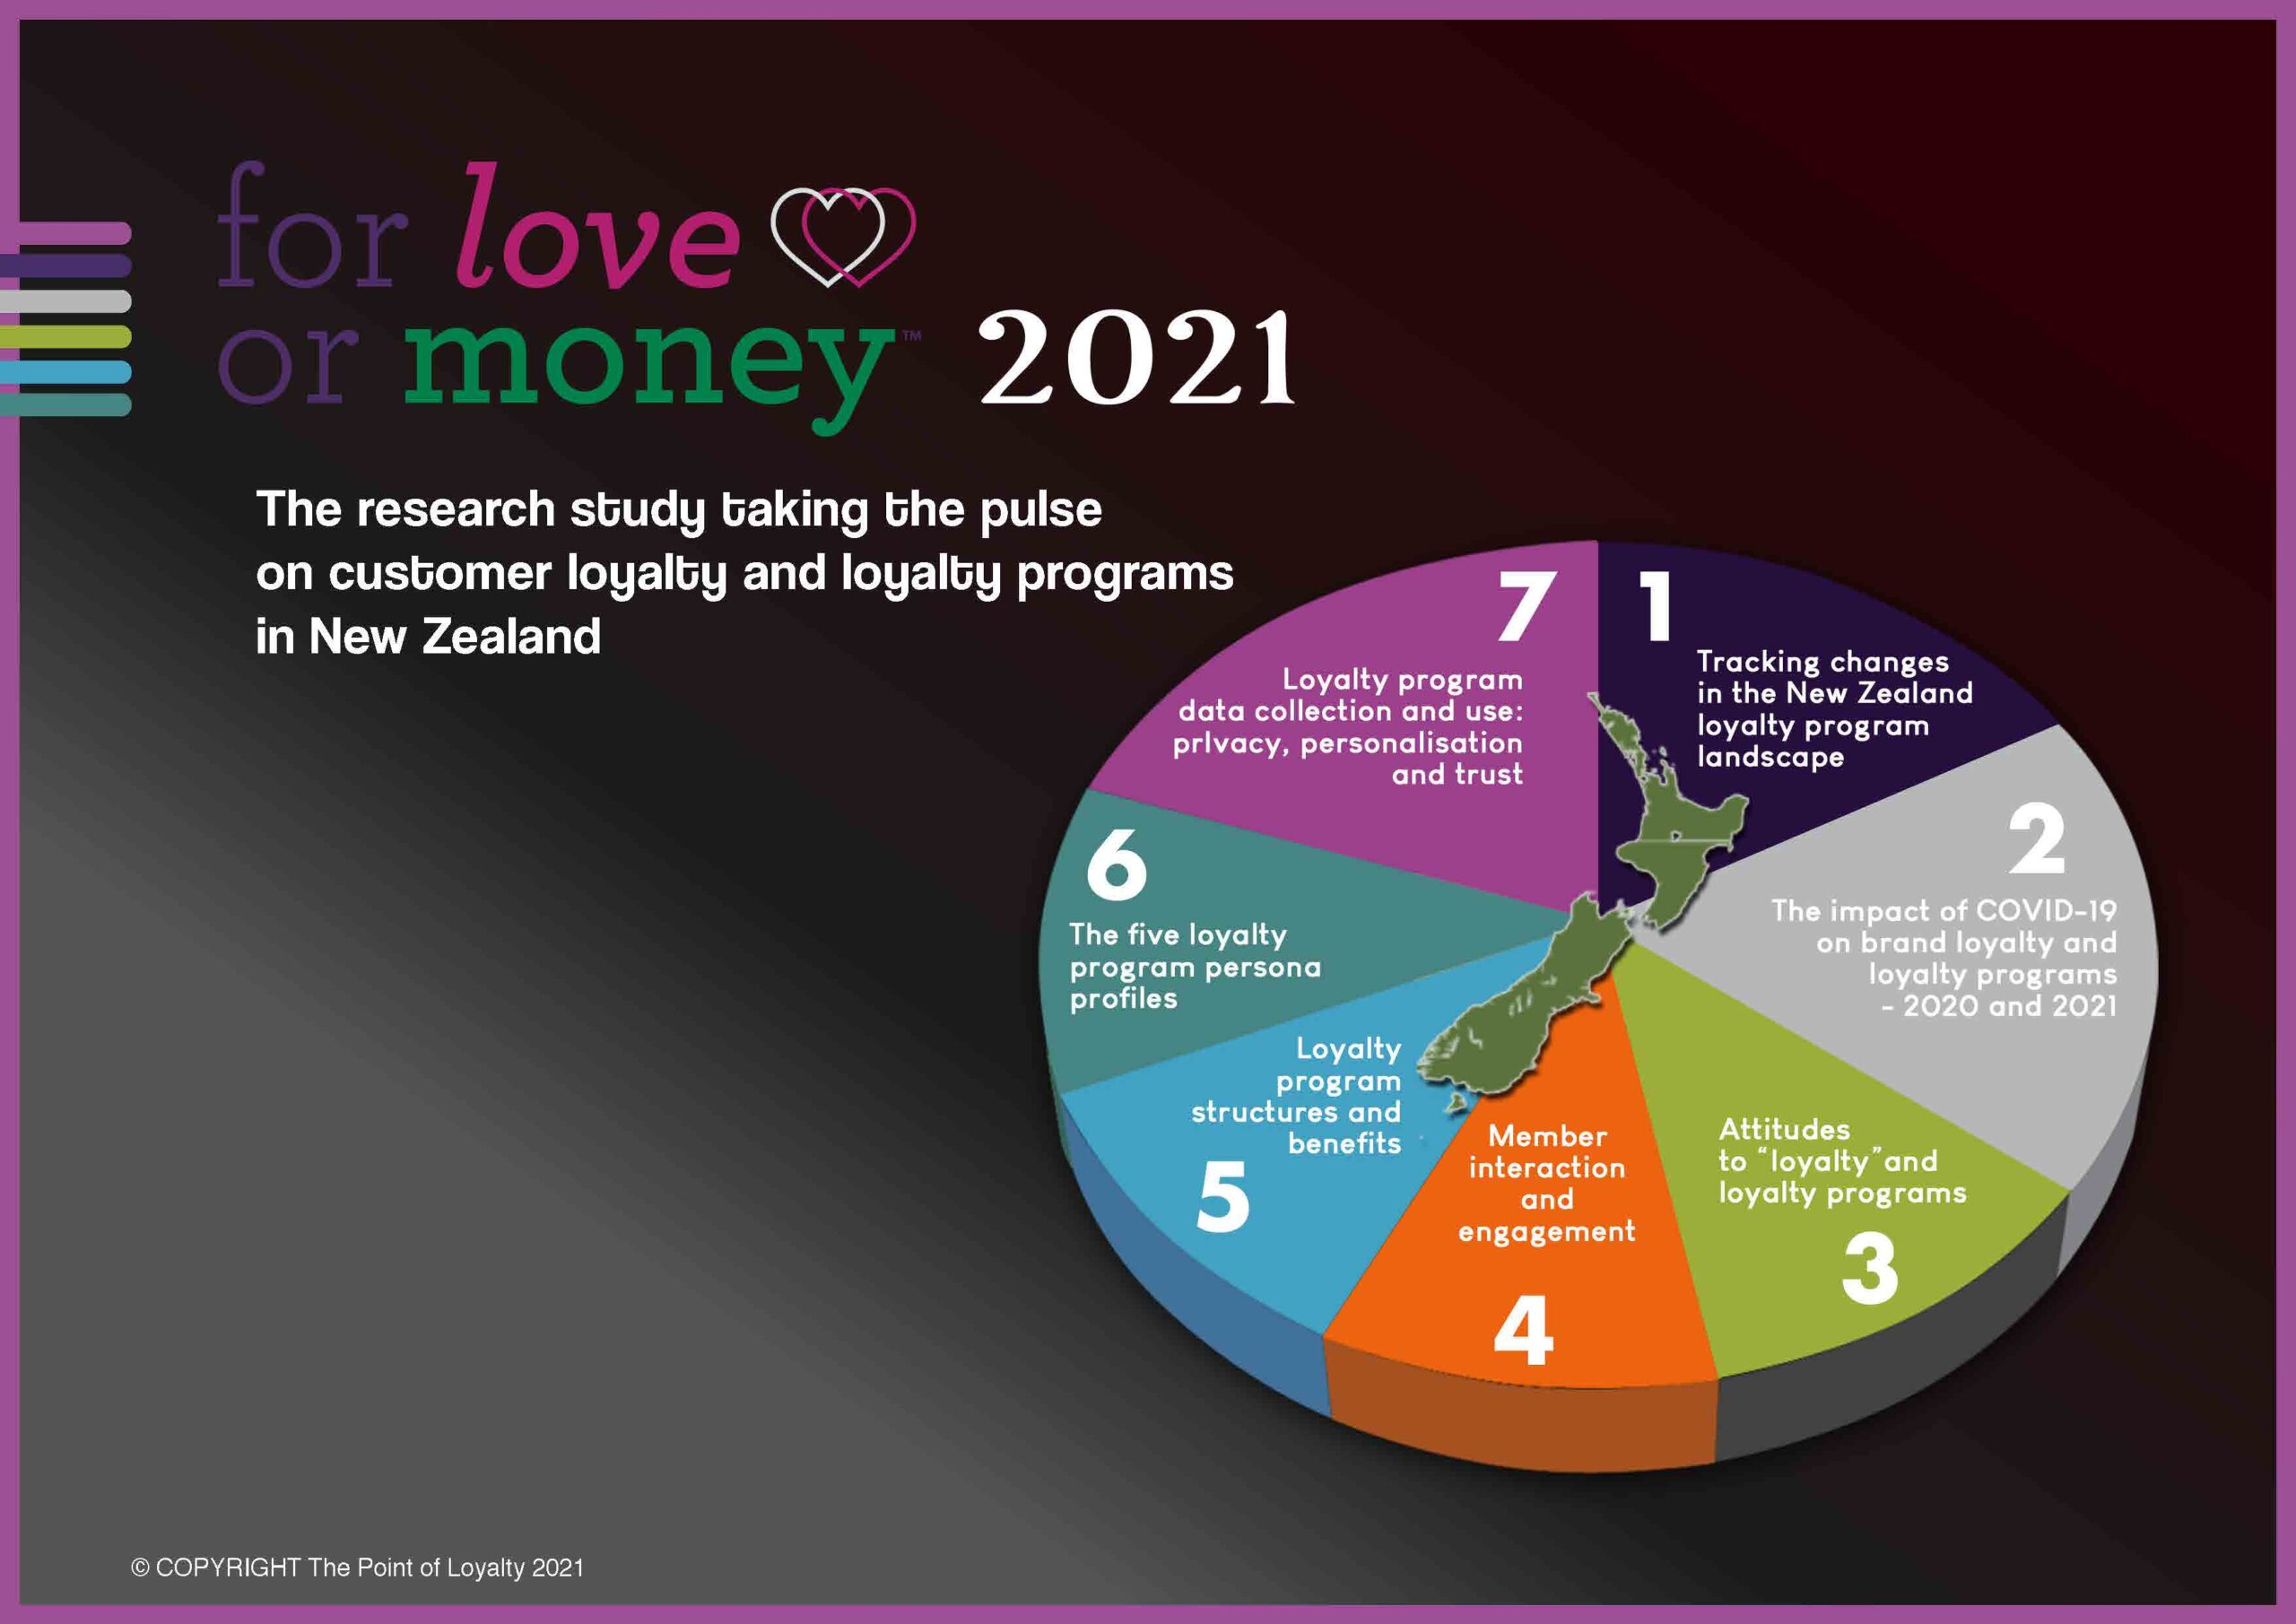 New Zealand For Love or Money customer loyalty and loyalty program research